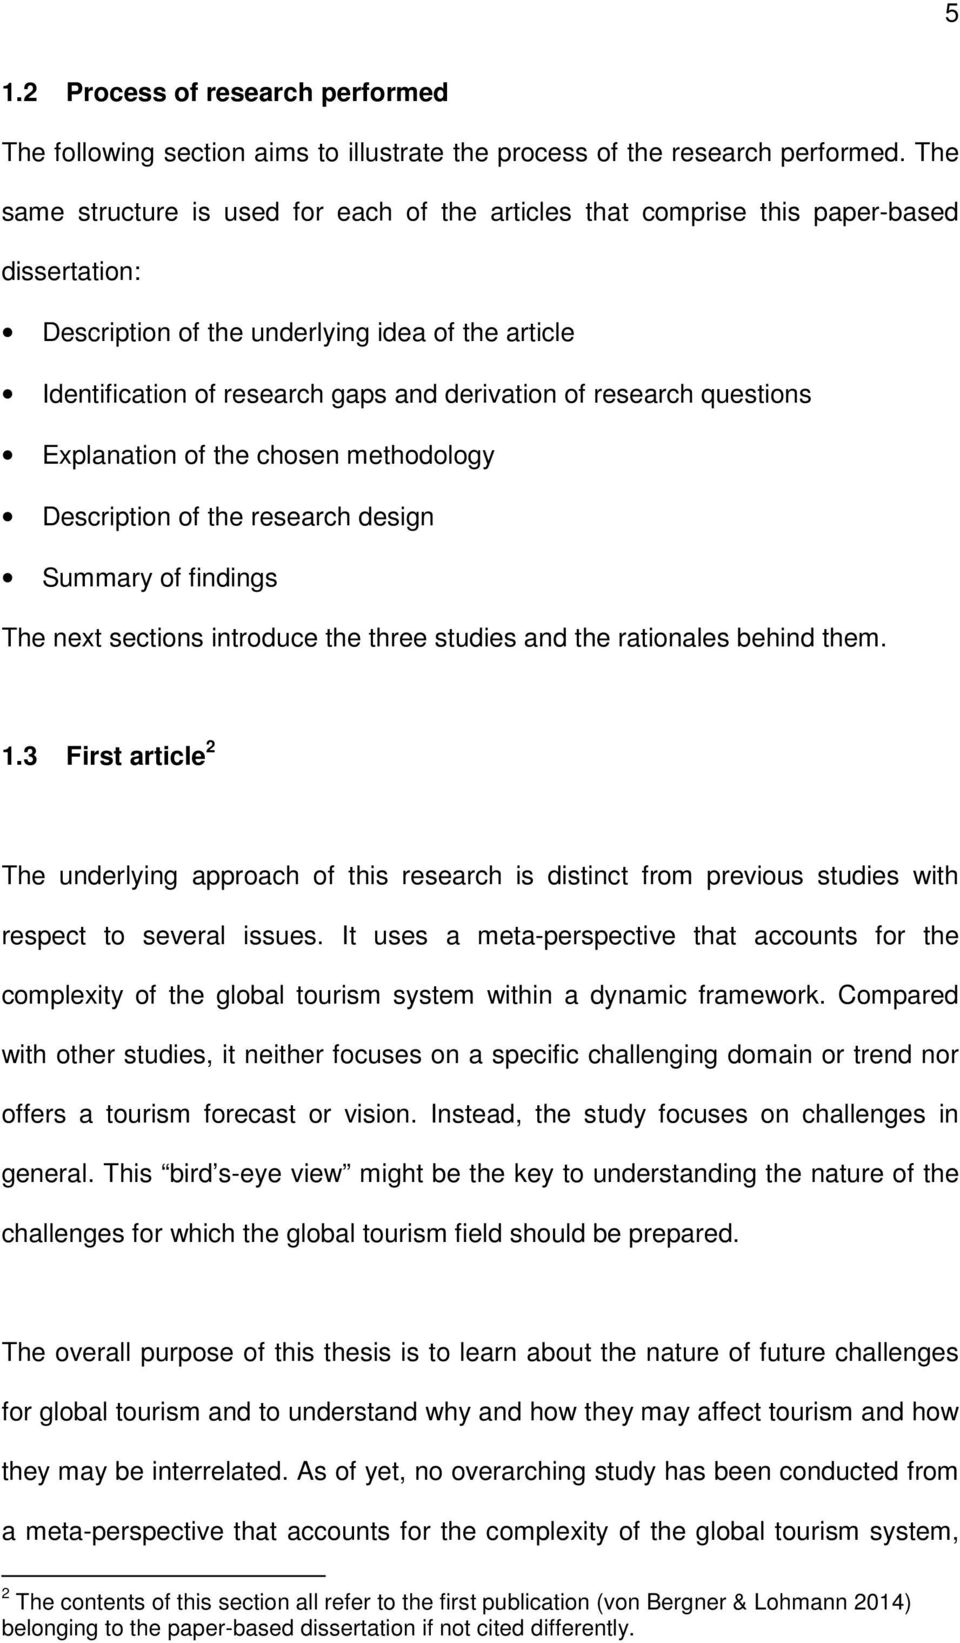 research questions Explanation of the chosen methodology Description of the research design Summary of findings The next sections introduce the three studies and the rationales behind them. 1.